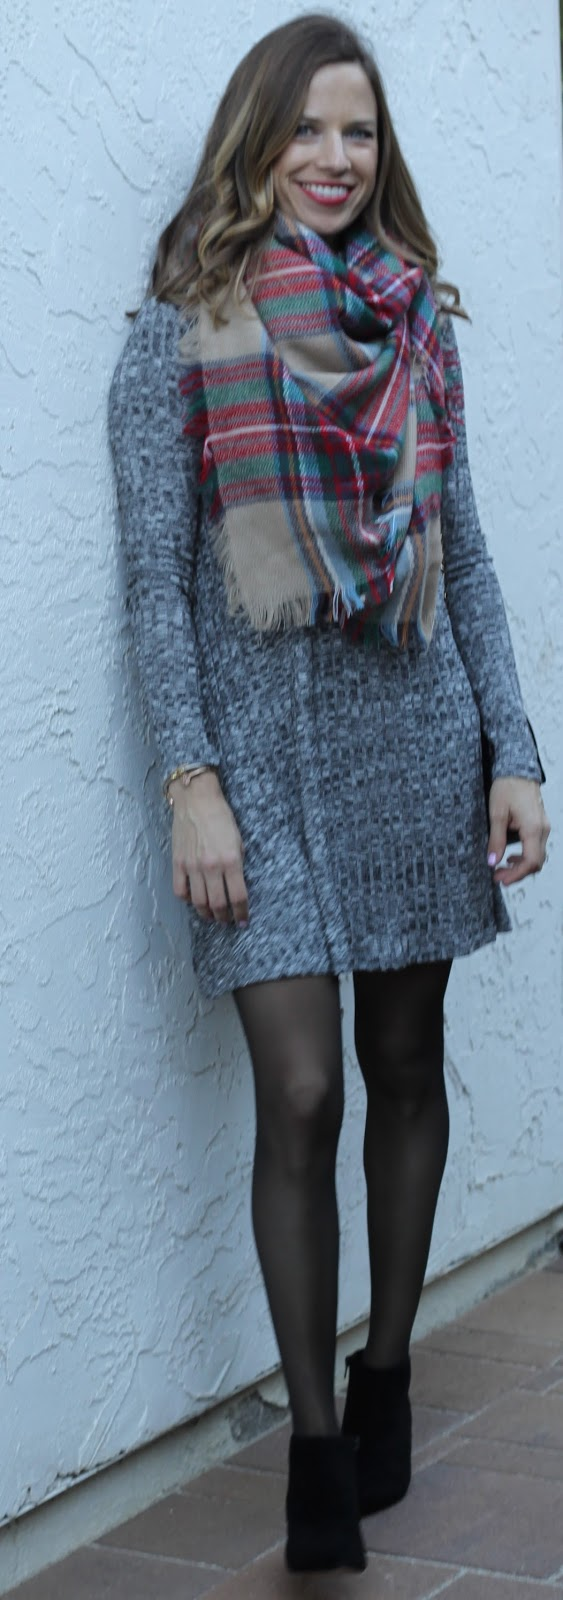 dress and booties outfit